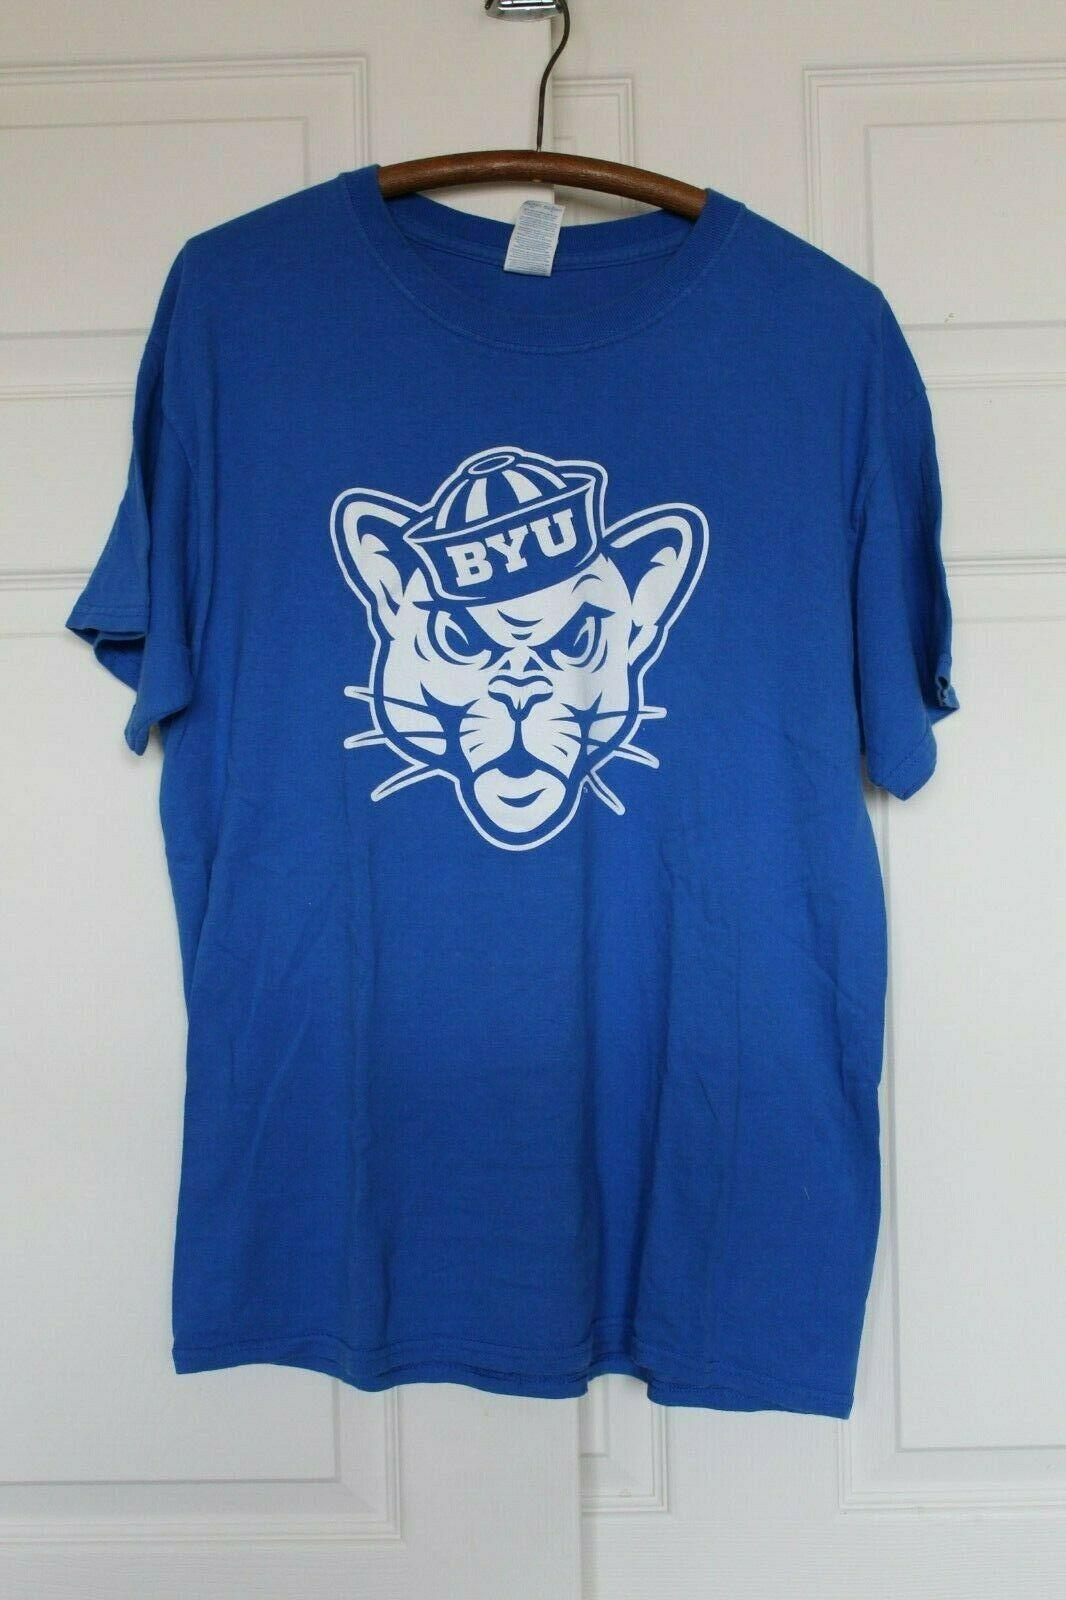 Бригам Янг Юта Мэнс L Grouchy Cougar Blue Cotton University S / S Футболка